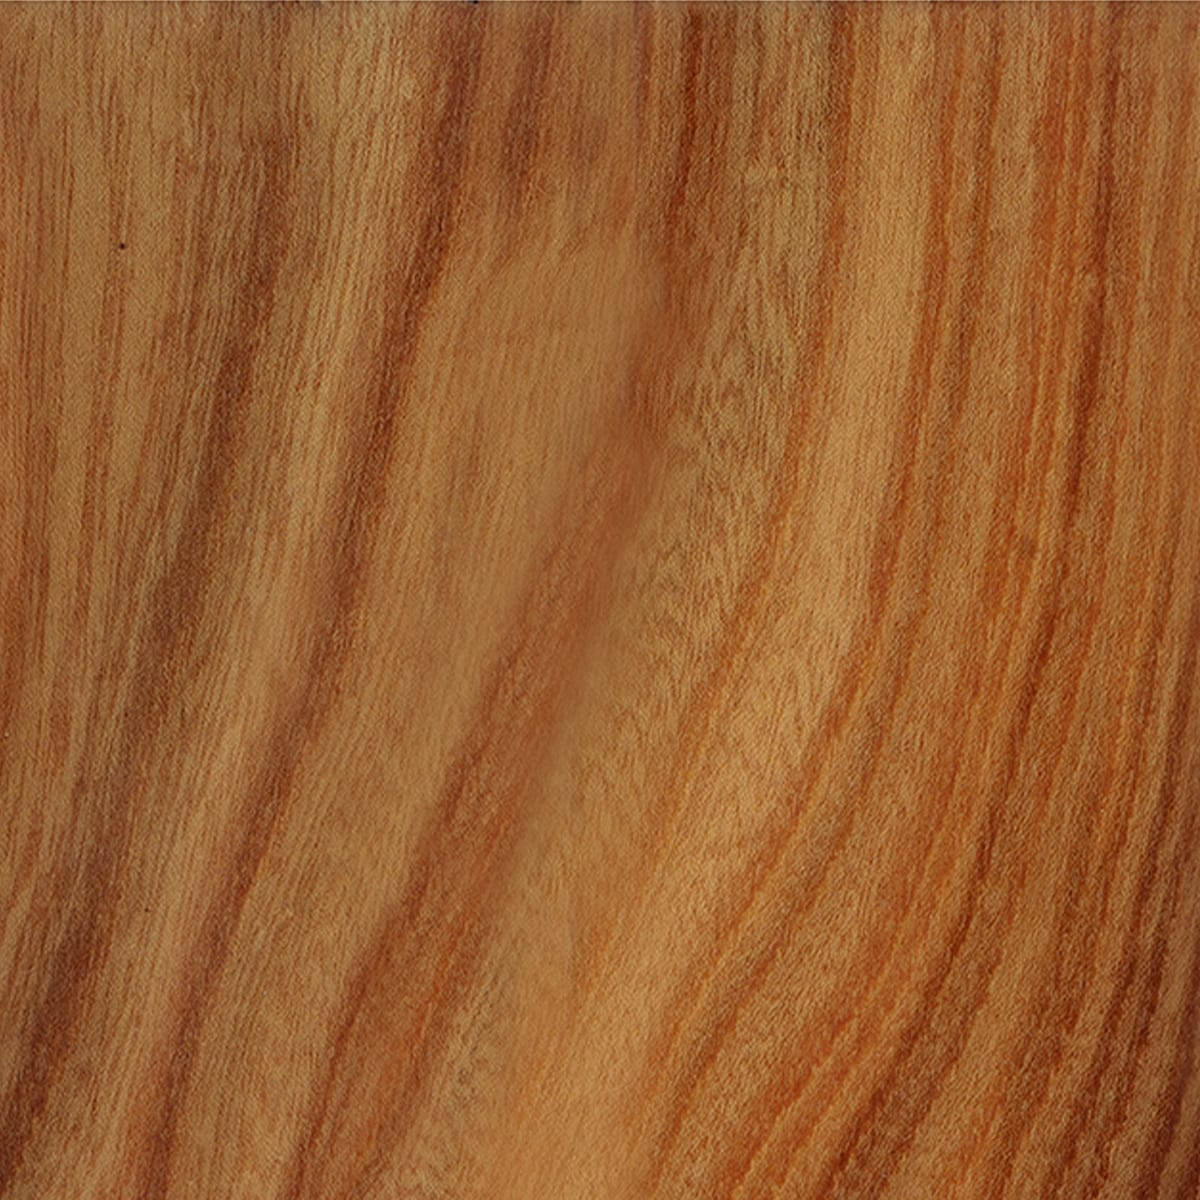 figured oak - wood veneer